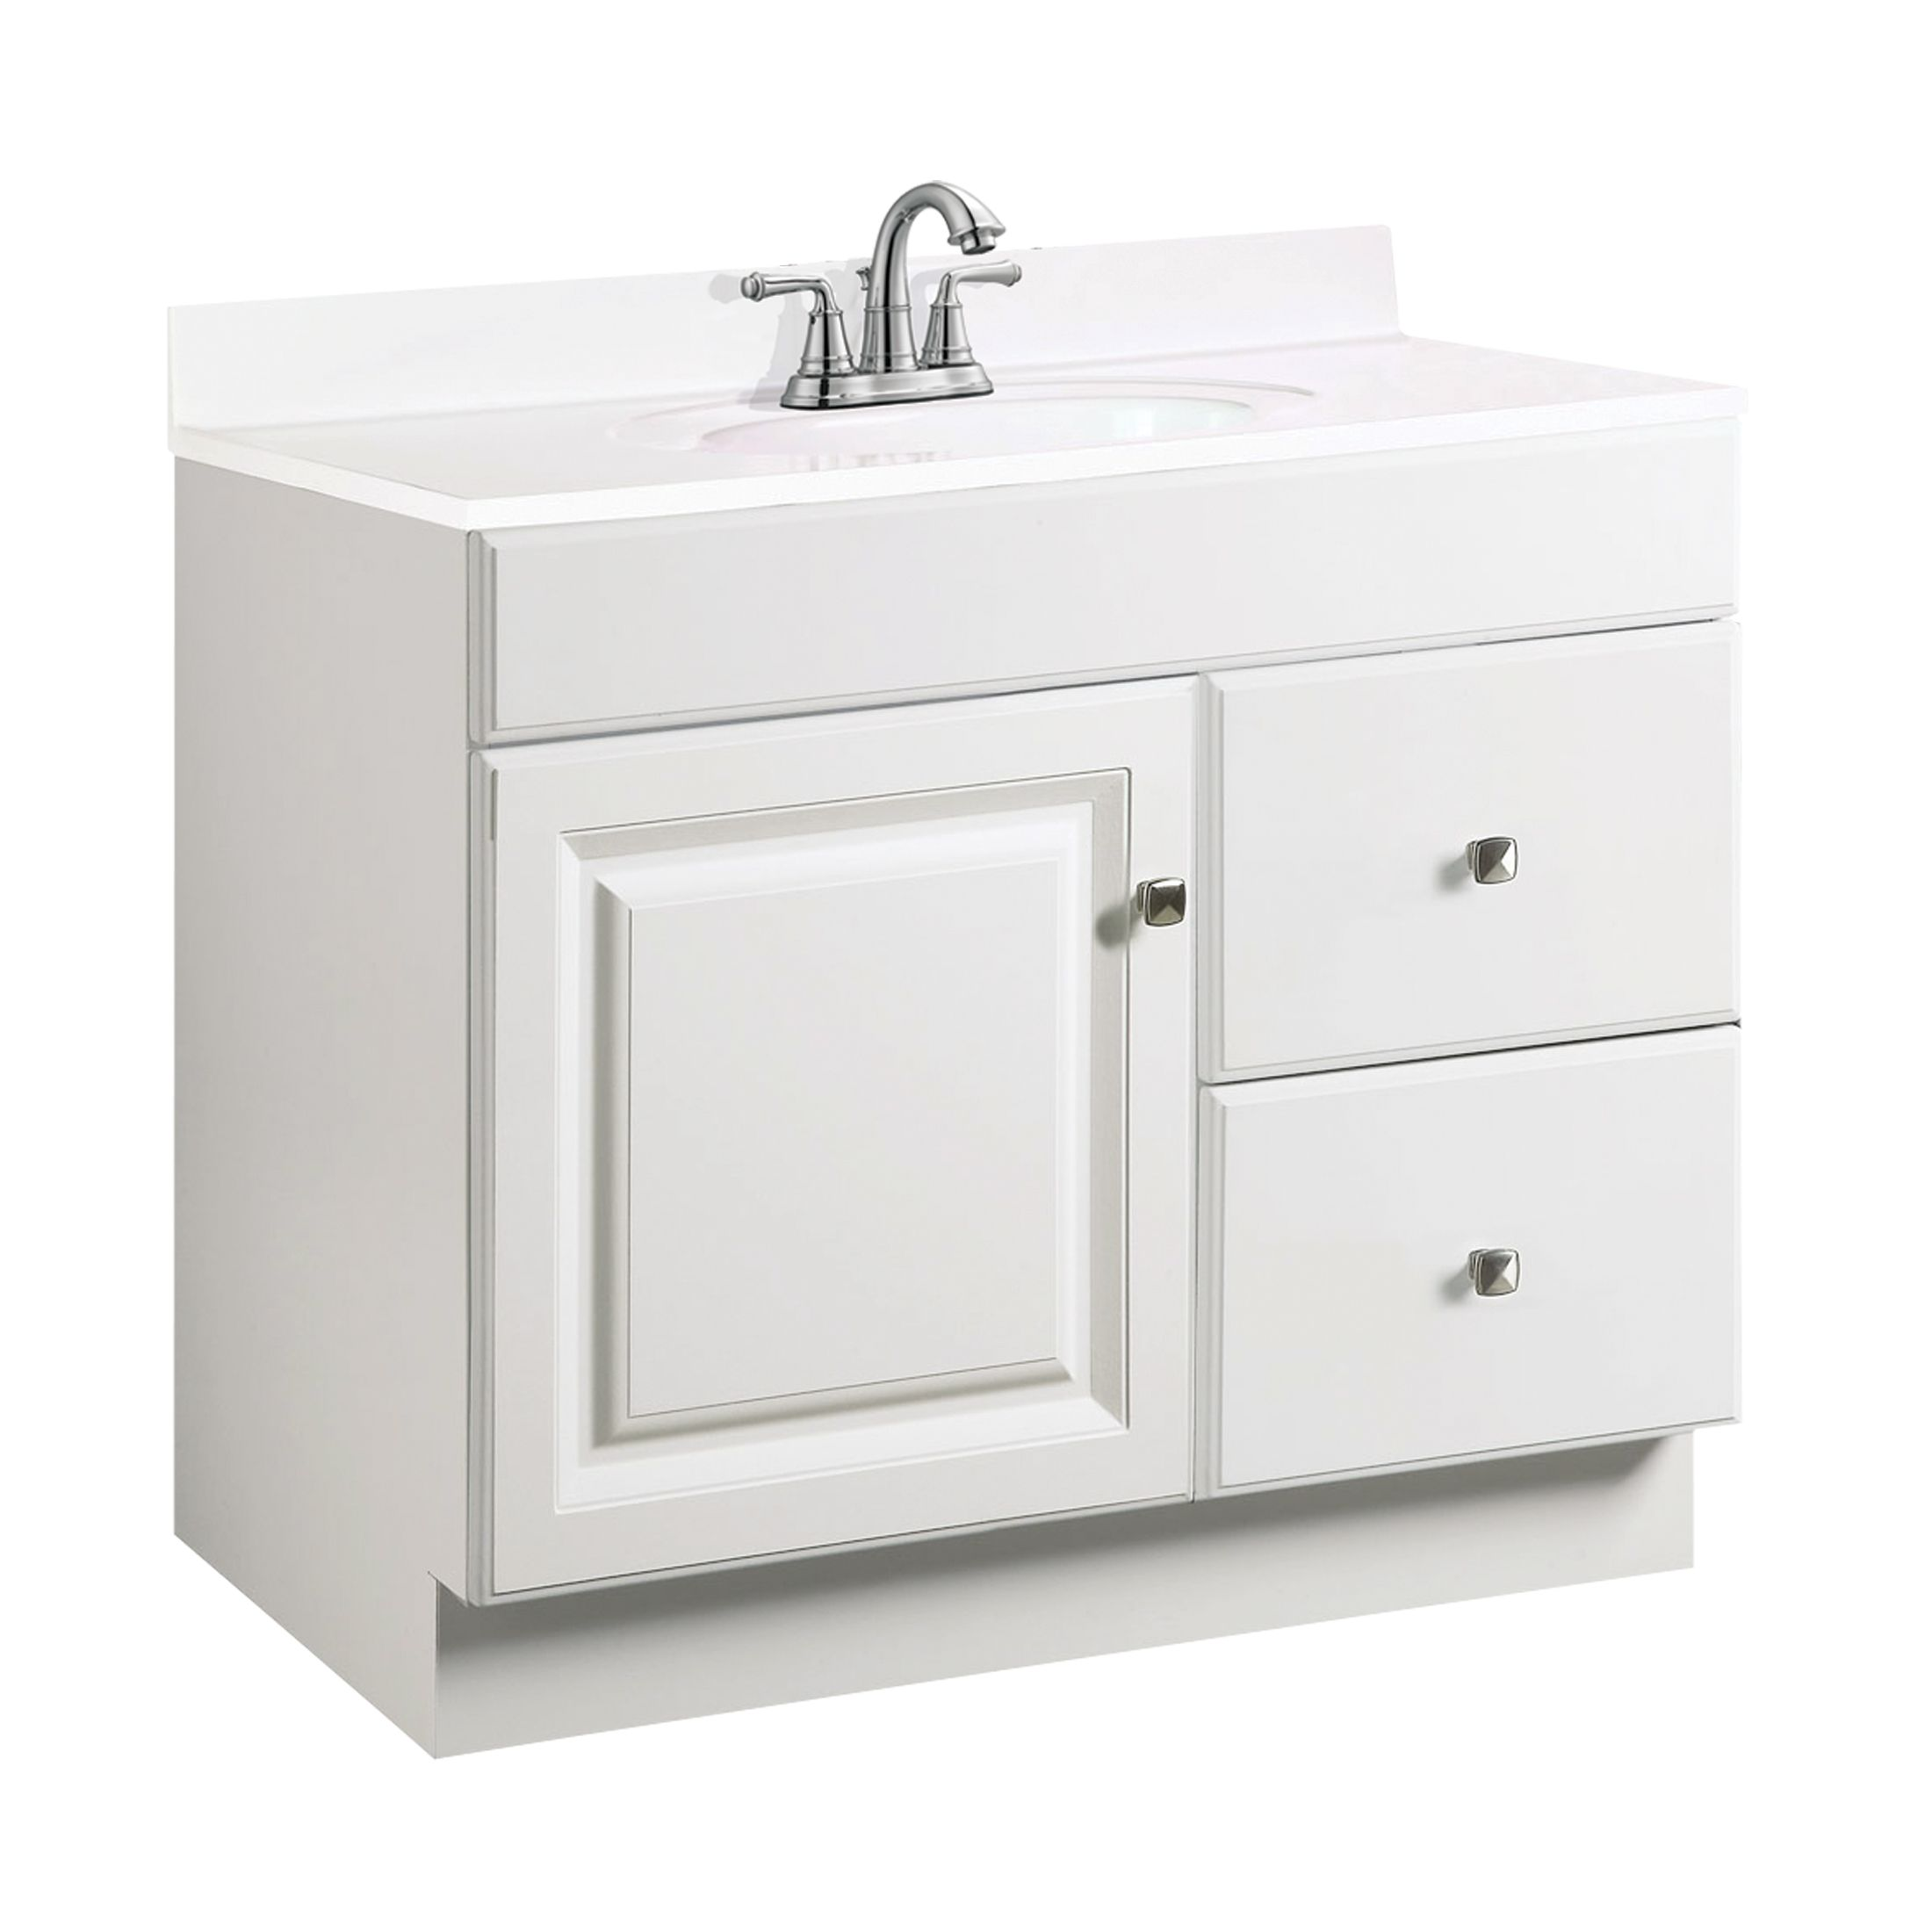 "Wyndham 1-Door 2-Drawer Vanity 36"", White #531954"